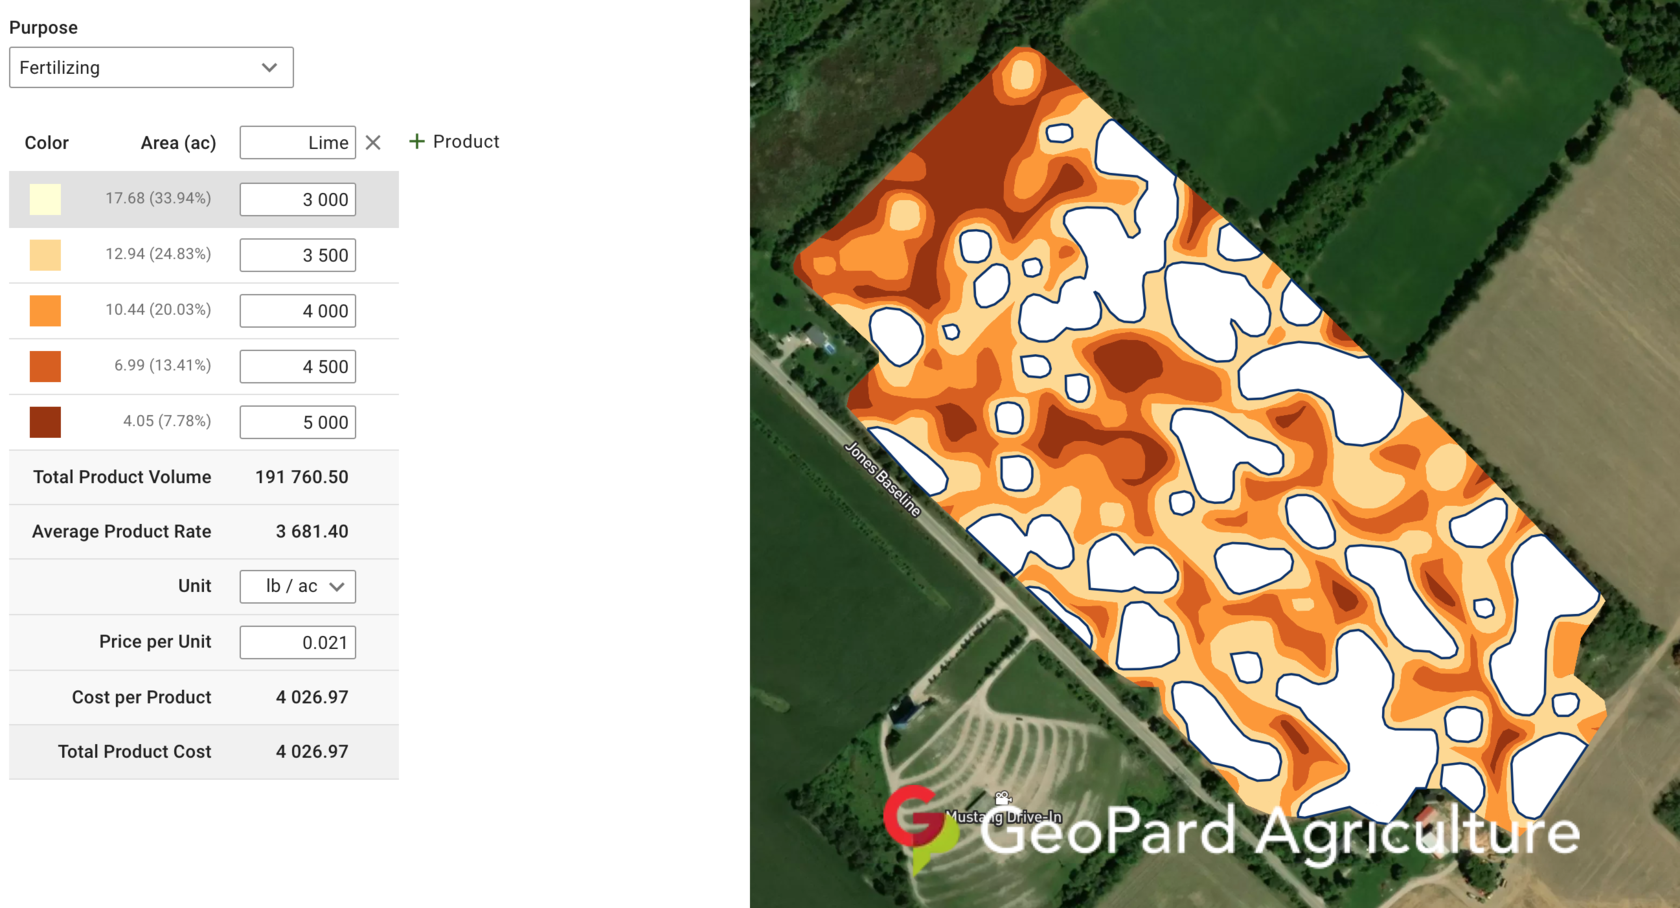 Variable rate Lime application based on SoilOptix pH levels. The cost of product is calculated by GeoPard